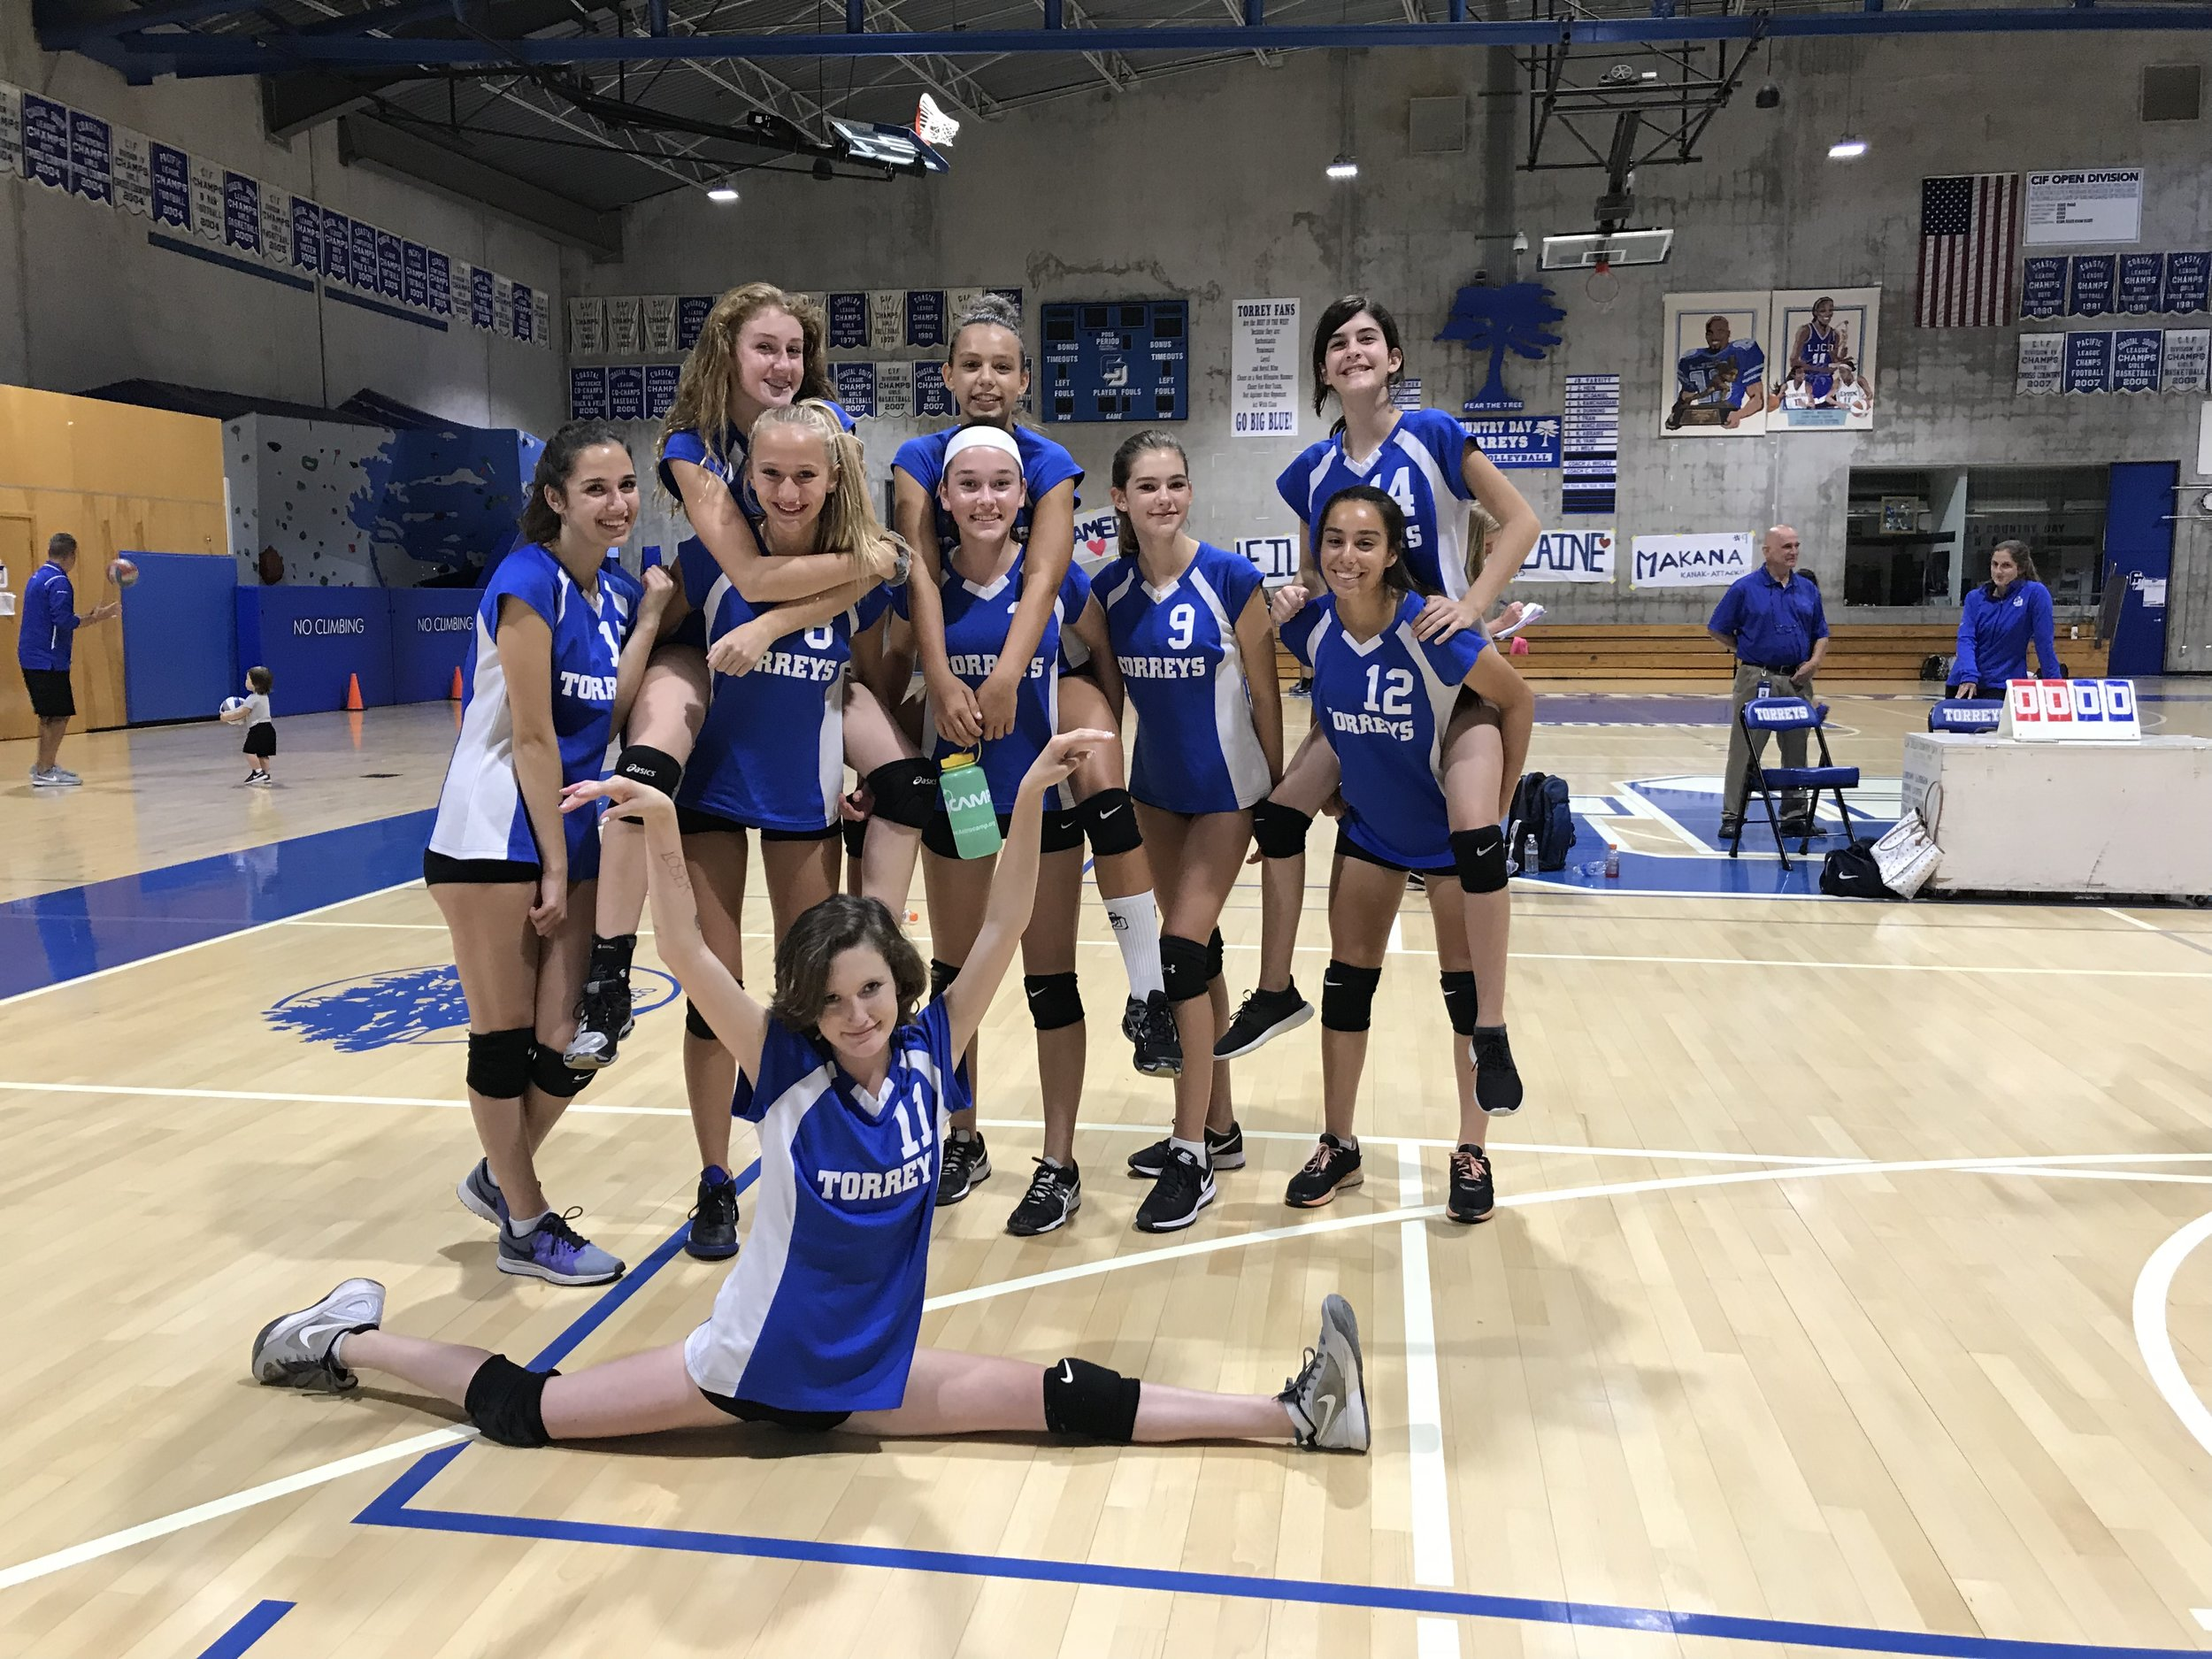 """Logan said to be sure that we don't say that our team isn't """"undefeated"""", but that we are """"hot, we are the hottest team on the court right now at the moment..."""" En fuego! I agree!"""